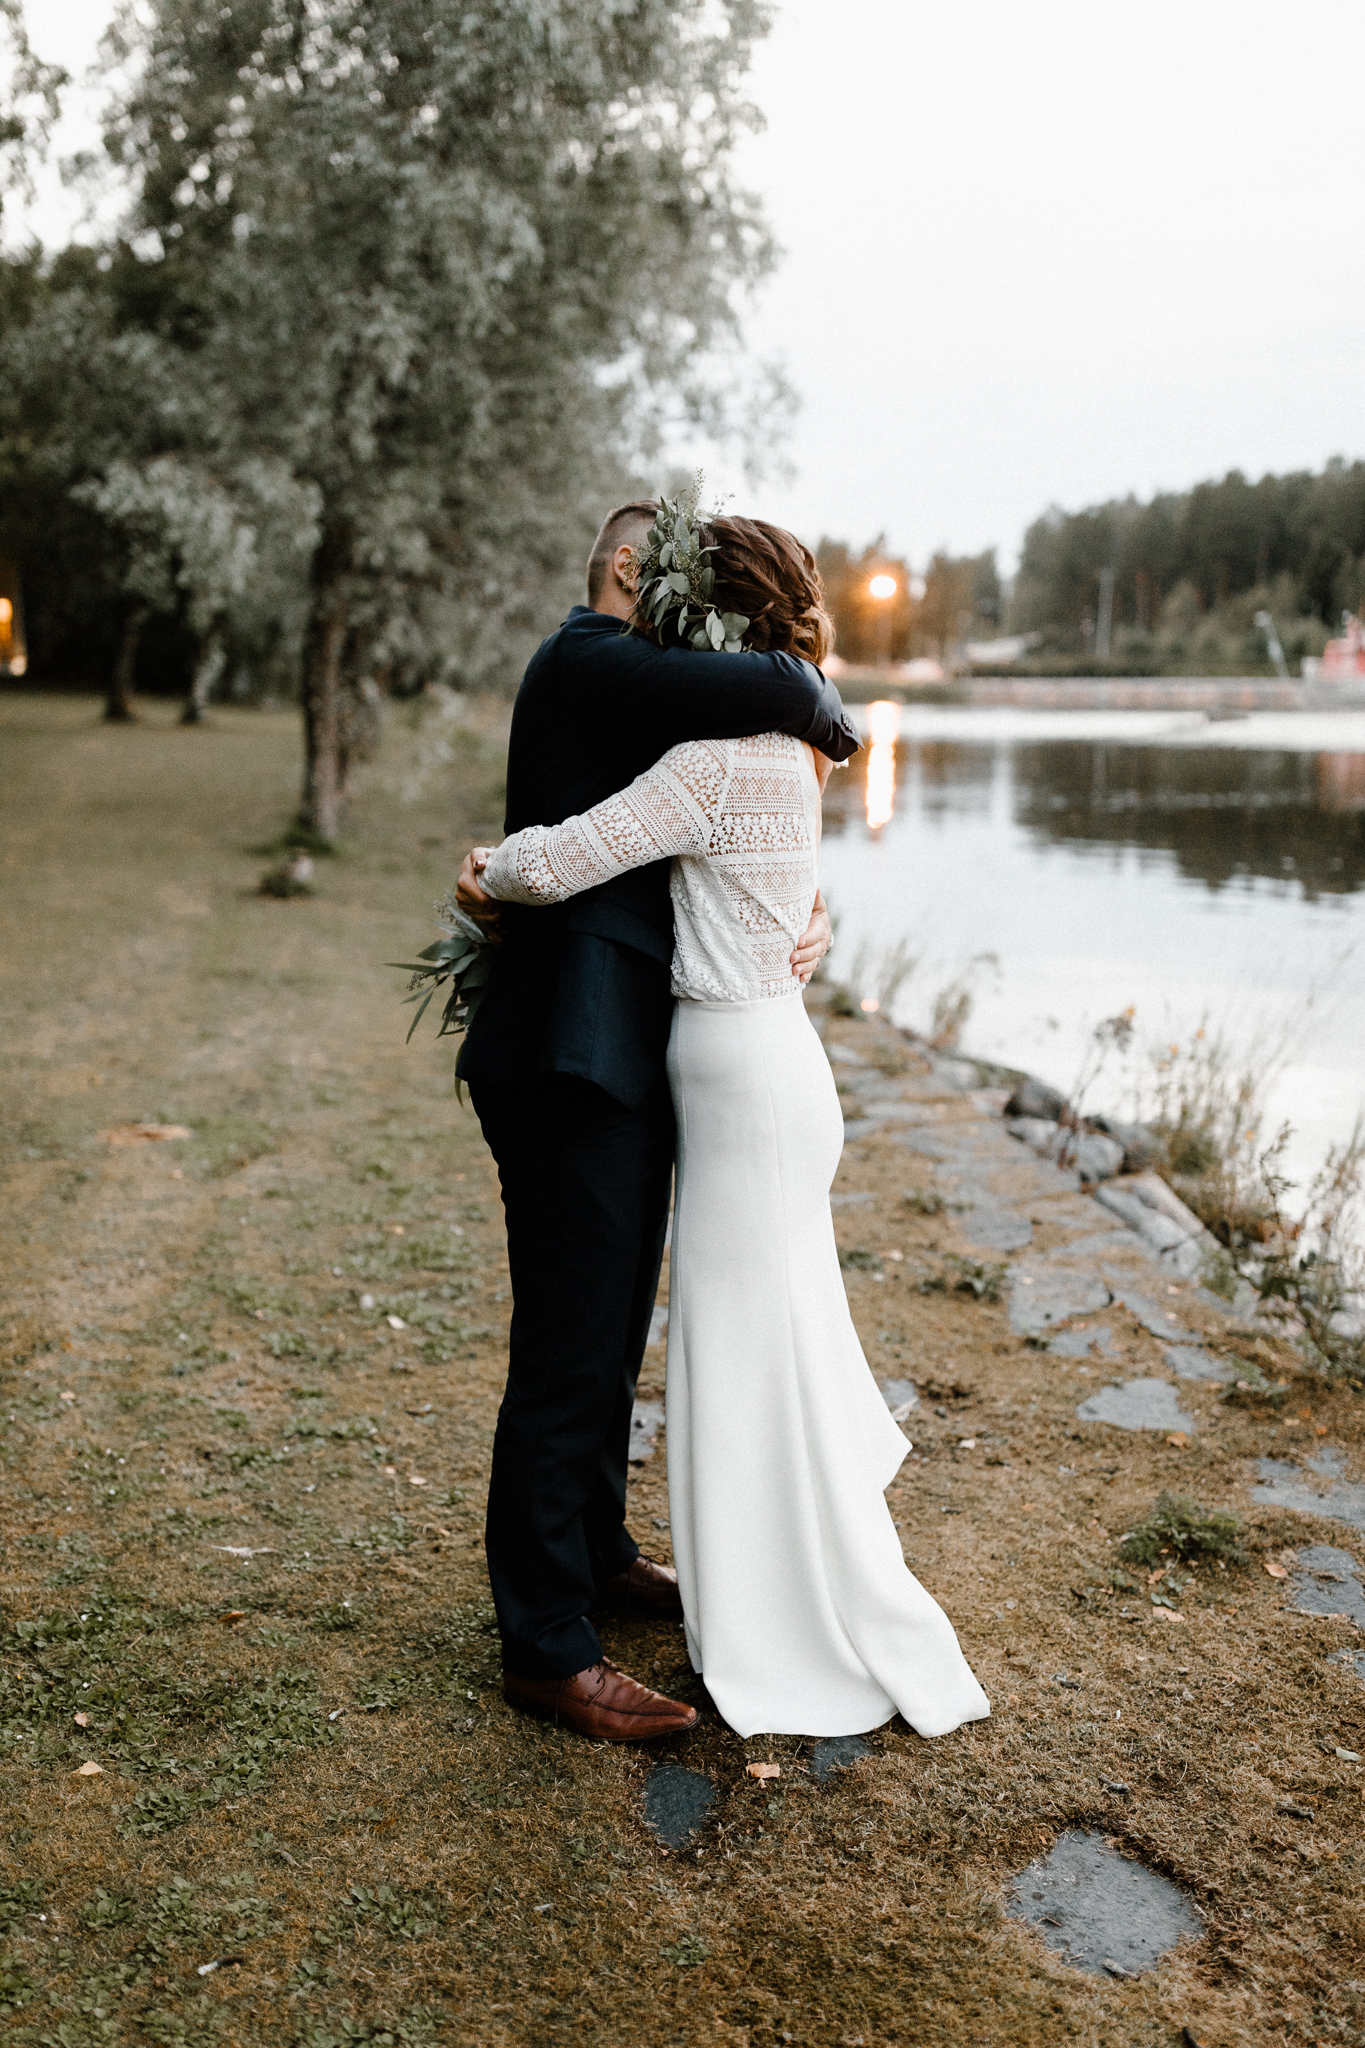 Julien + Johanna | Villa Ivan Falin | by Patrick Karkkolainen Wedding Photography-276.jpg